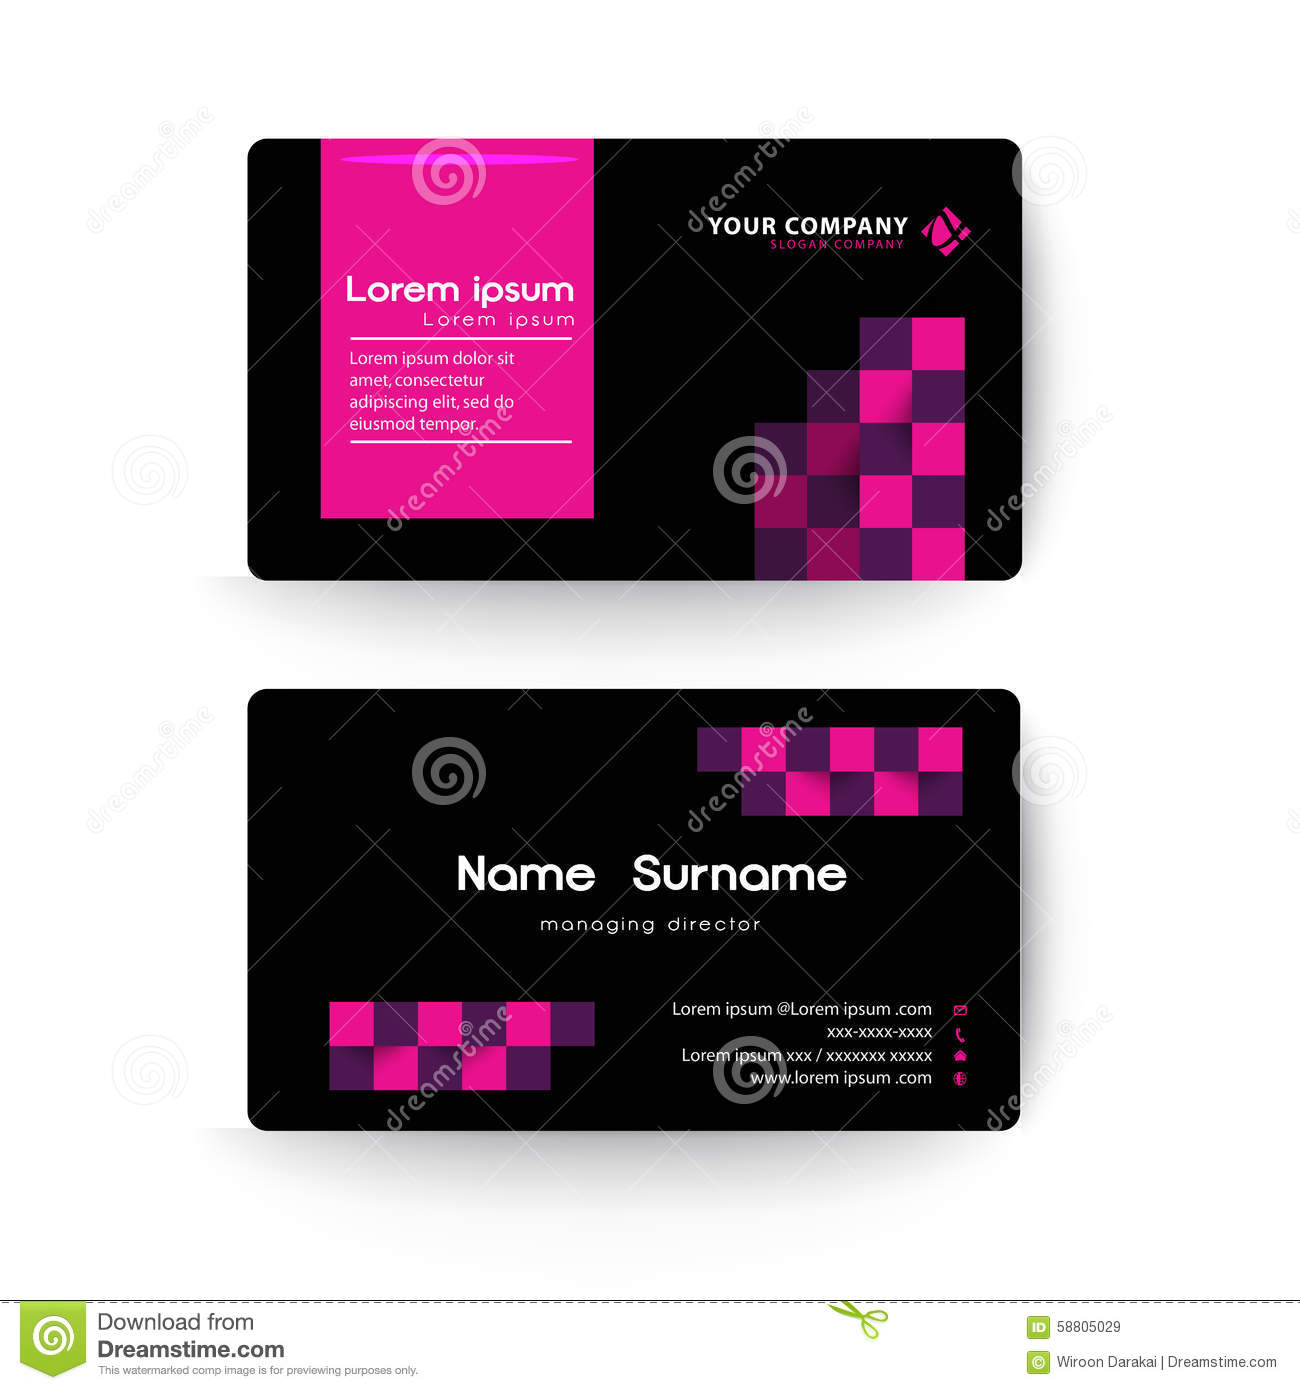 Modern business card template black and pink color stock vector modern business card template black and pink color cheaphphosting Choice Image